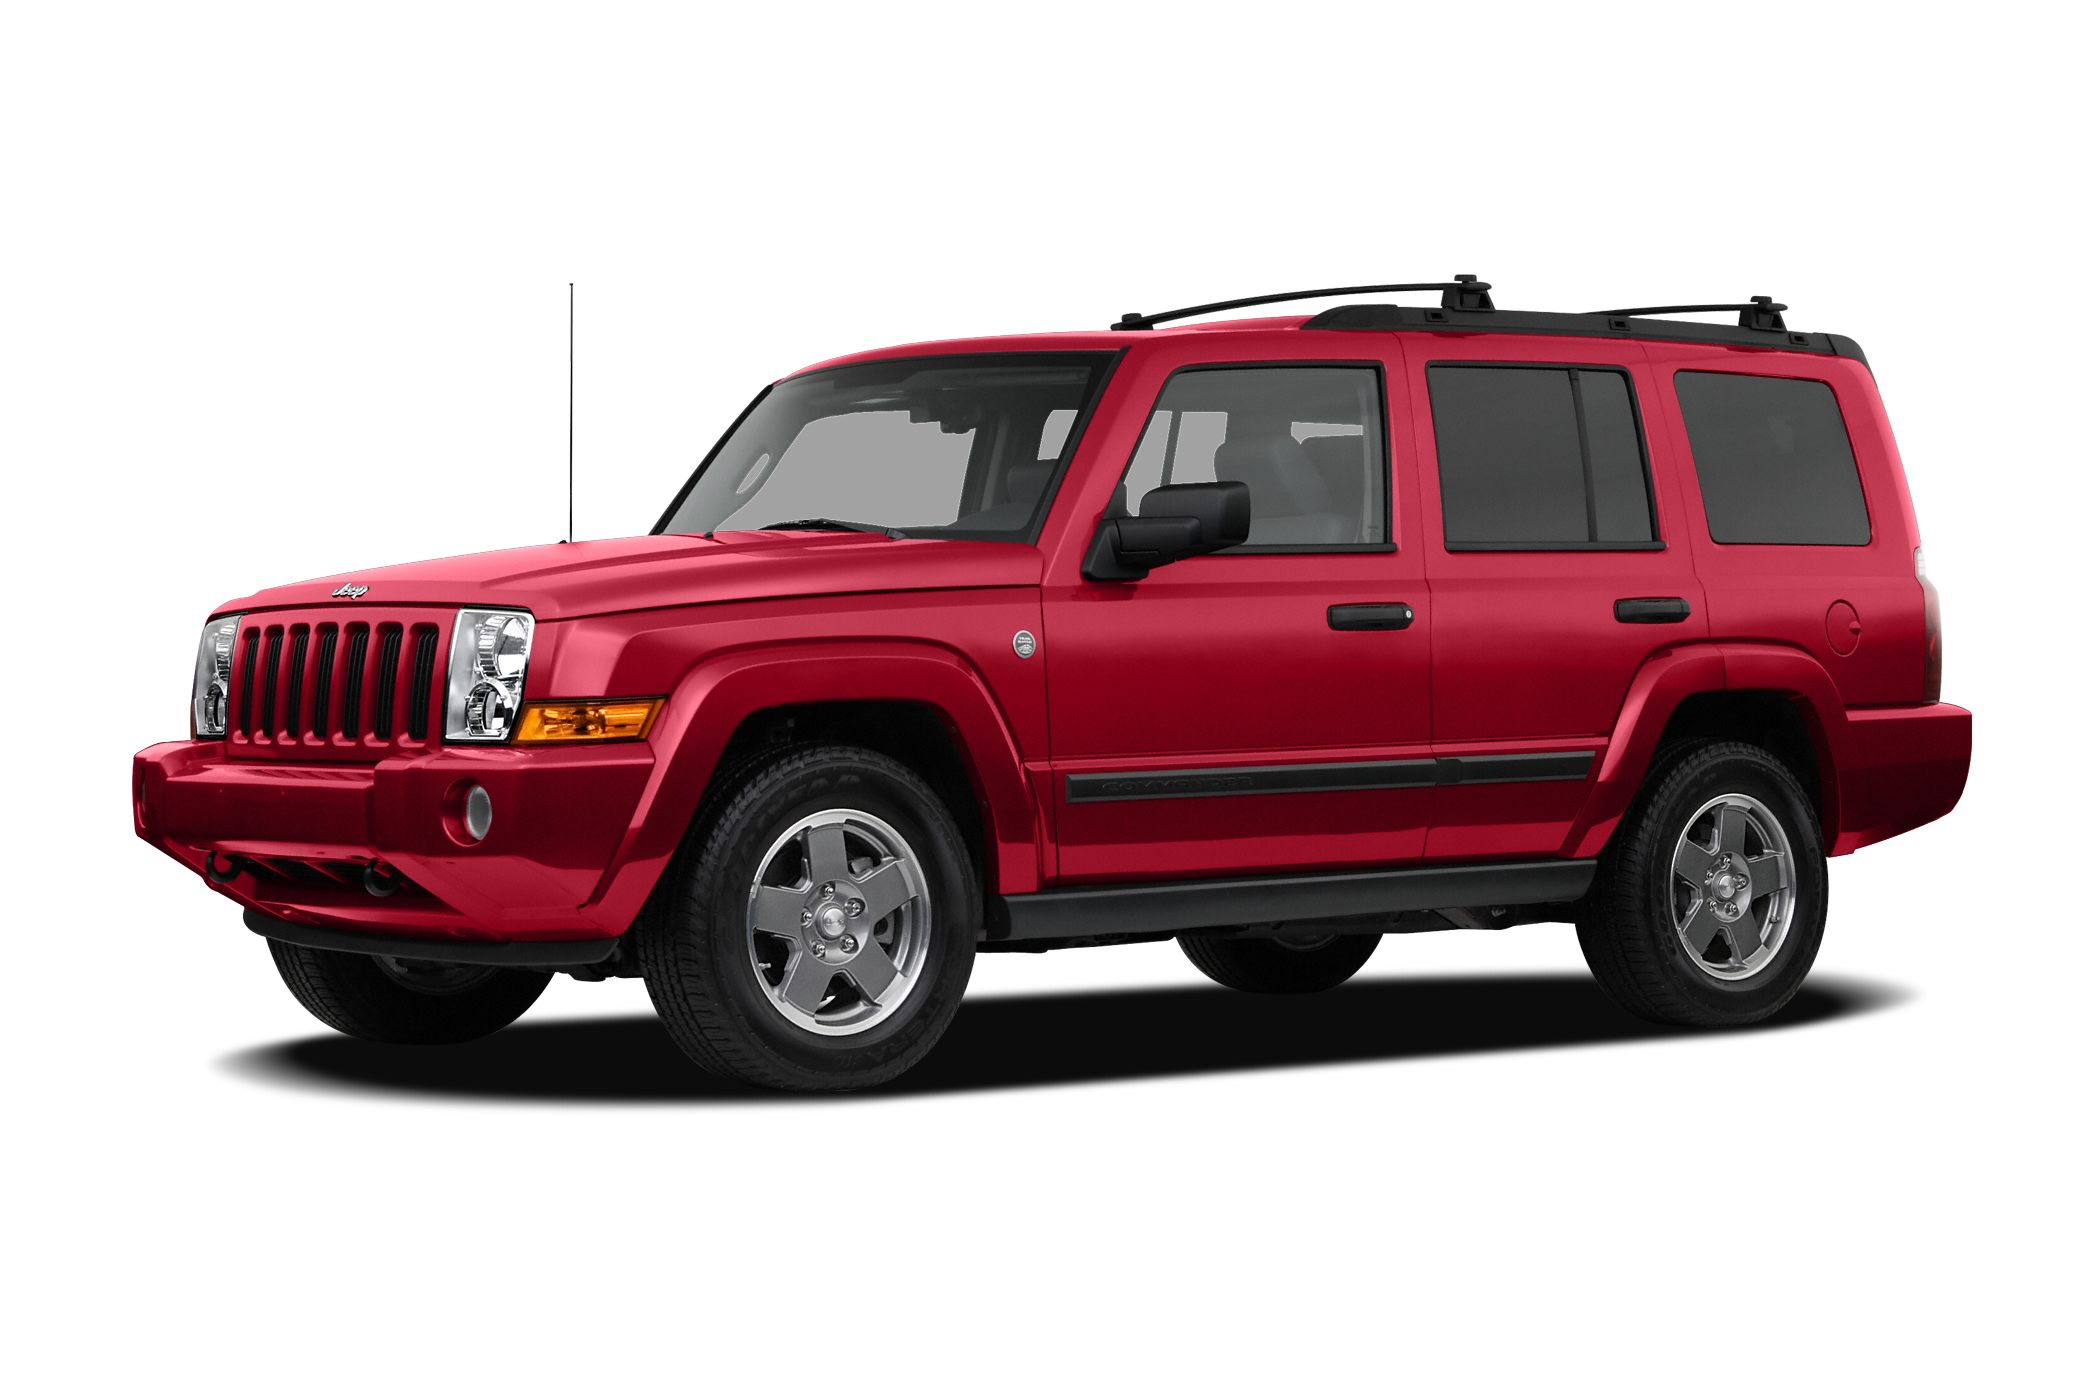 2010 Jeep Commander Sport SUV for sale in Billings for $14,995 with 110,564 miles.